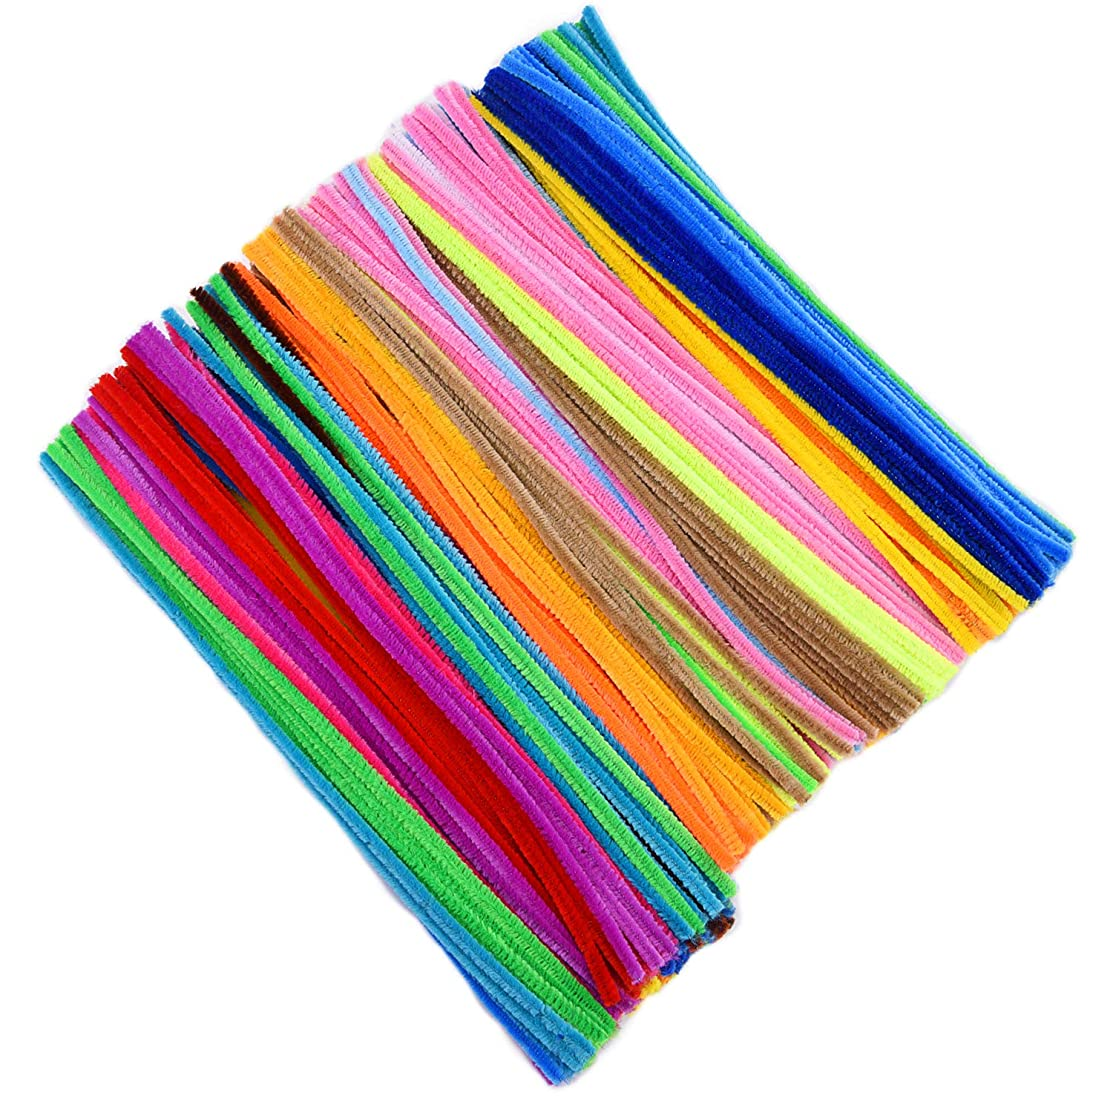 Livder 400 Pieces Colored Pipe Cleaners Chenille Stems for DIY Art Craft Handicrafts Decorations (6 mm x 12 inch)